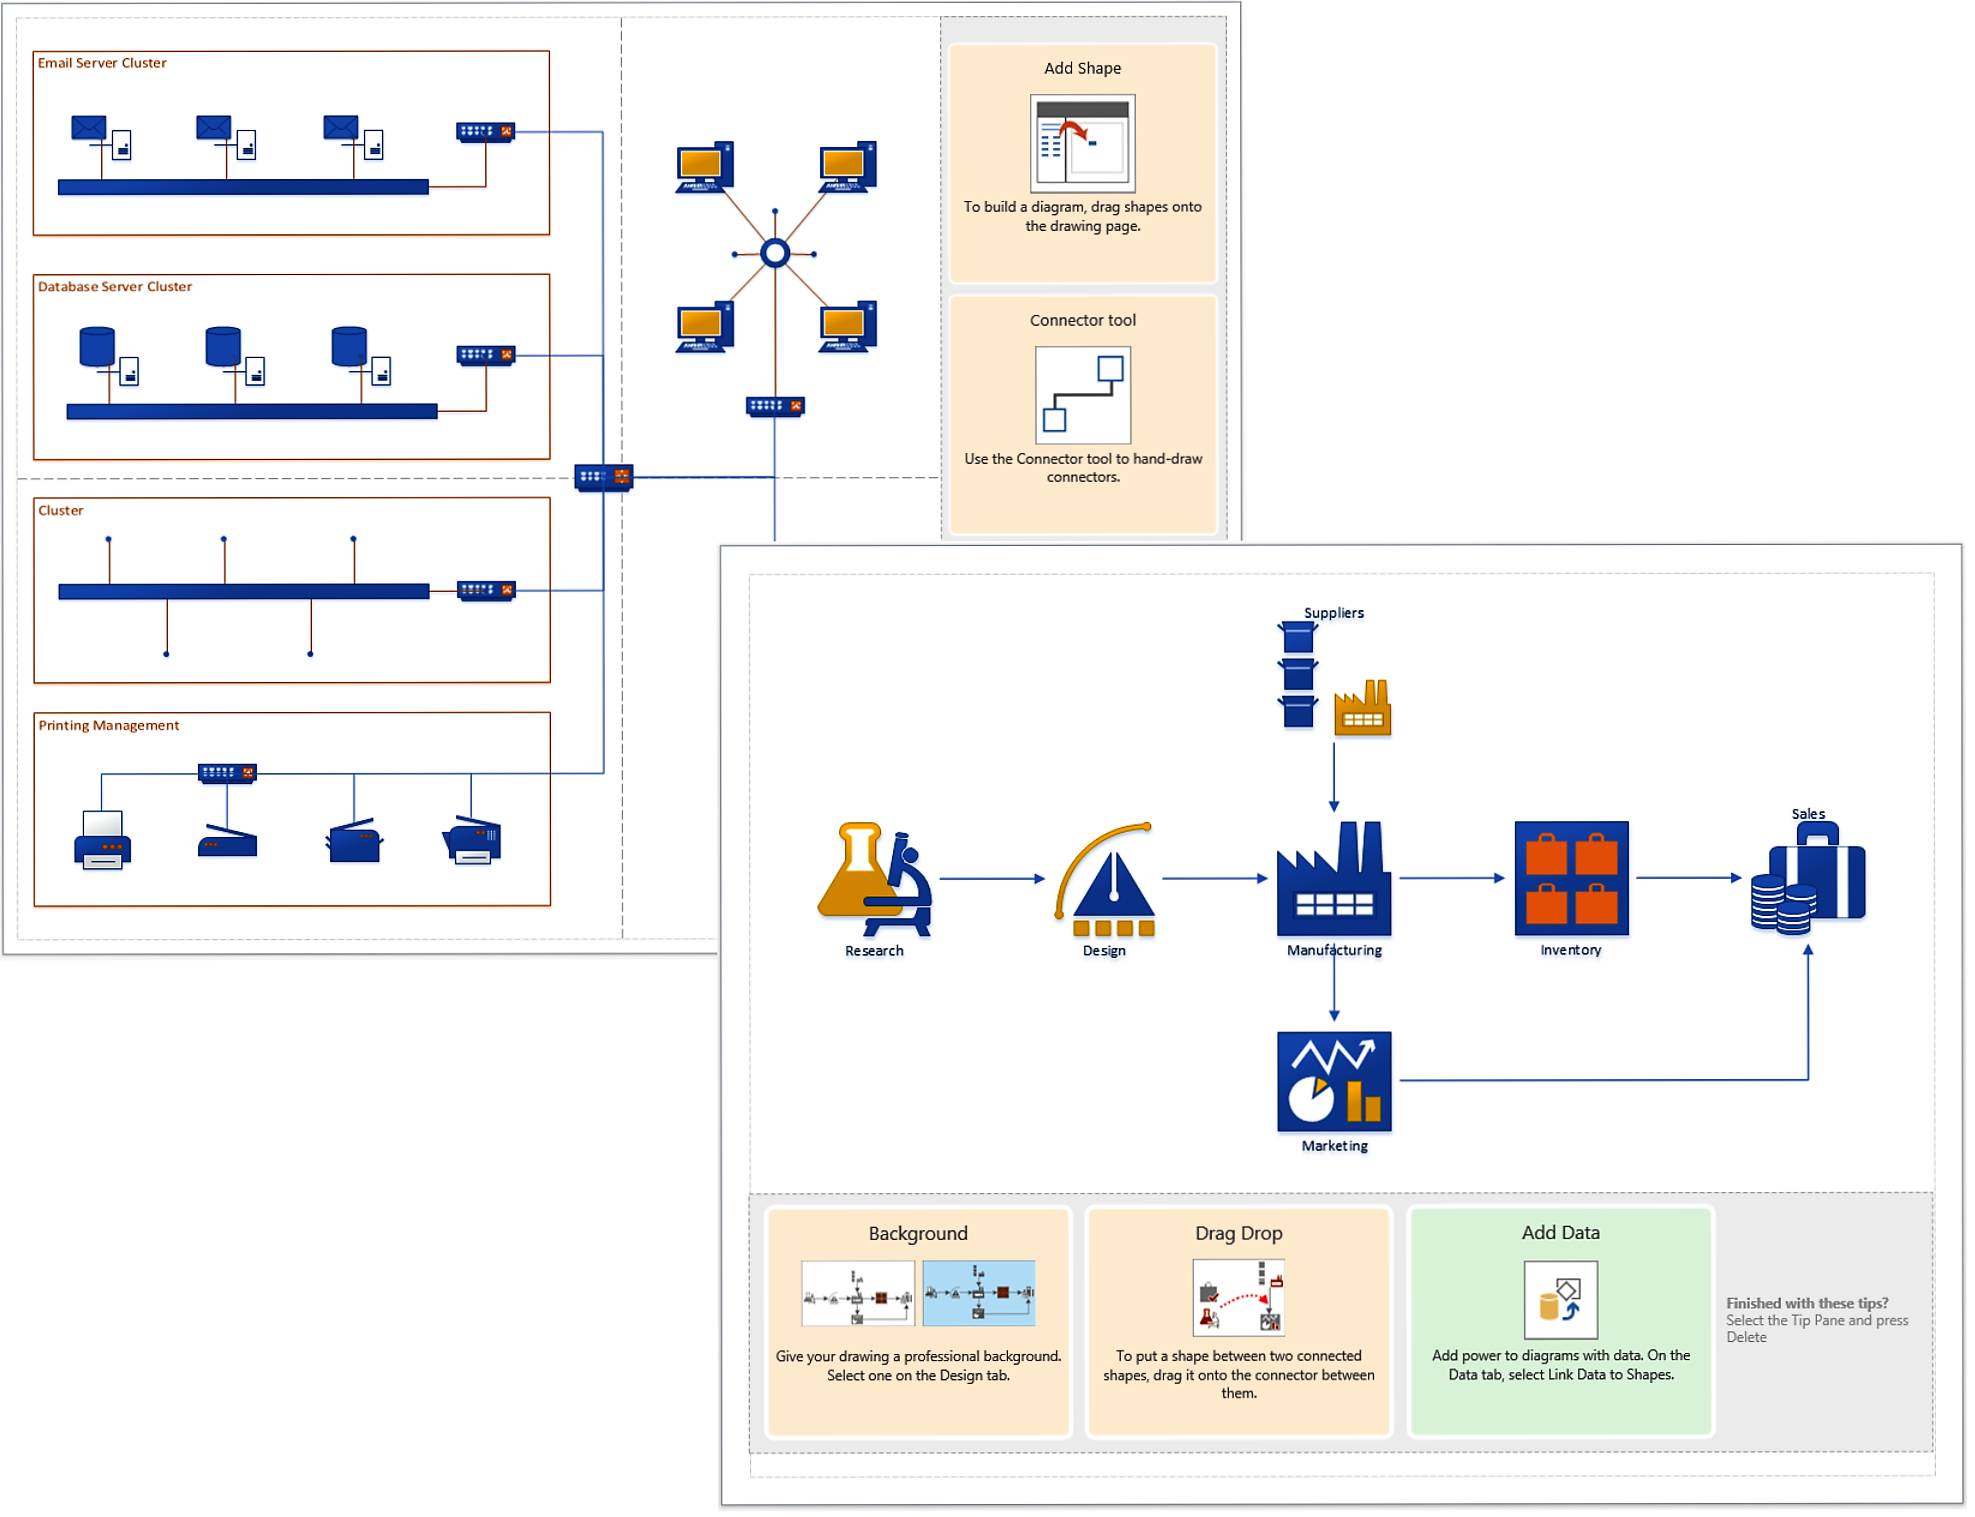 Diagram] Google Visio Diagram Full Version Hd Quality Visio